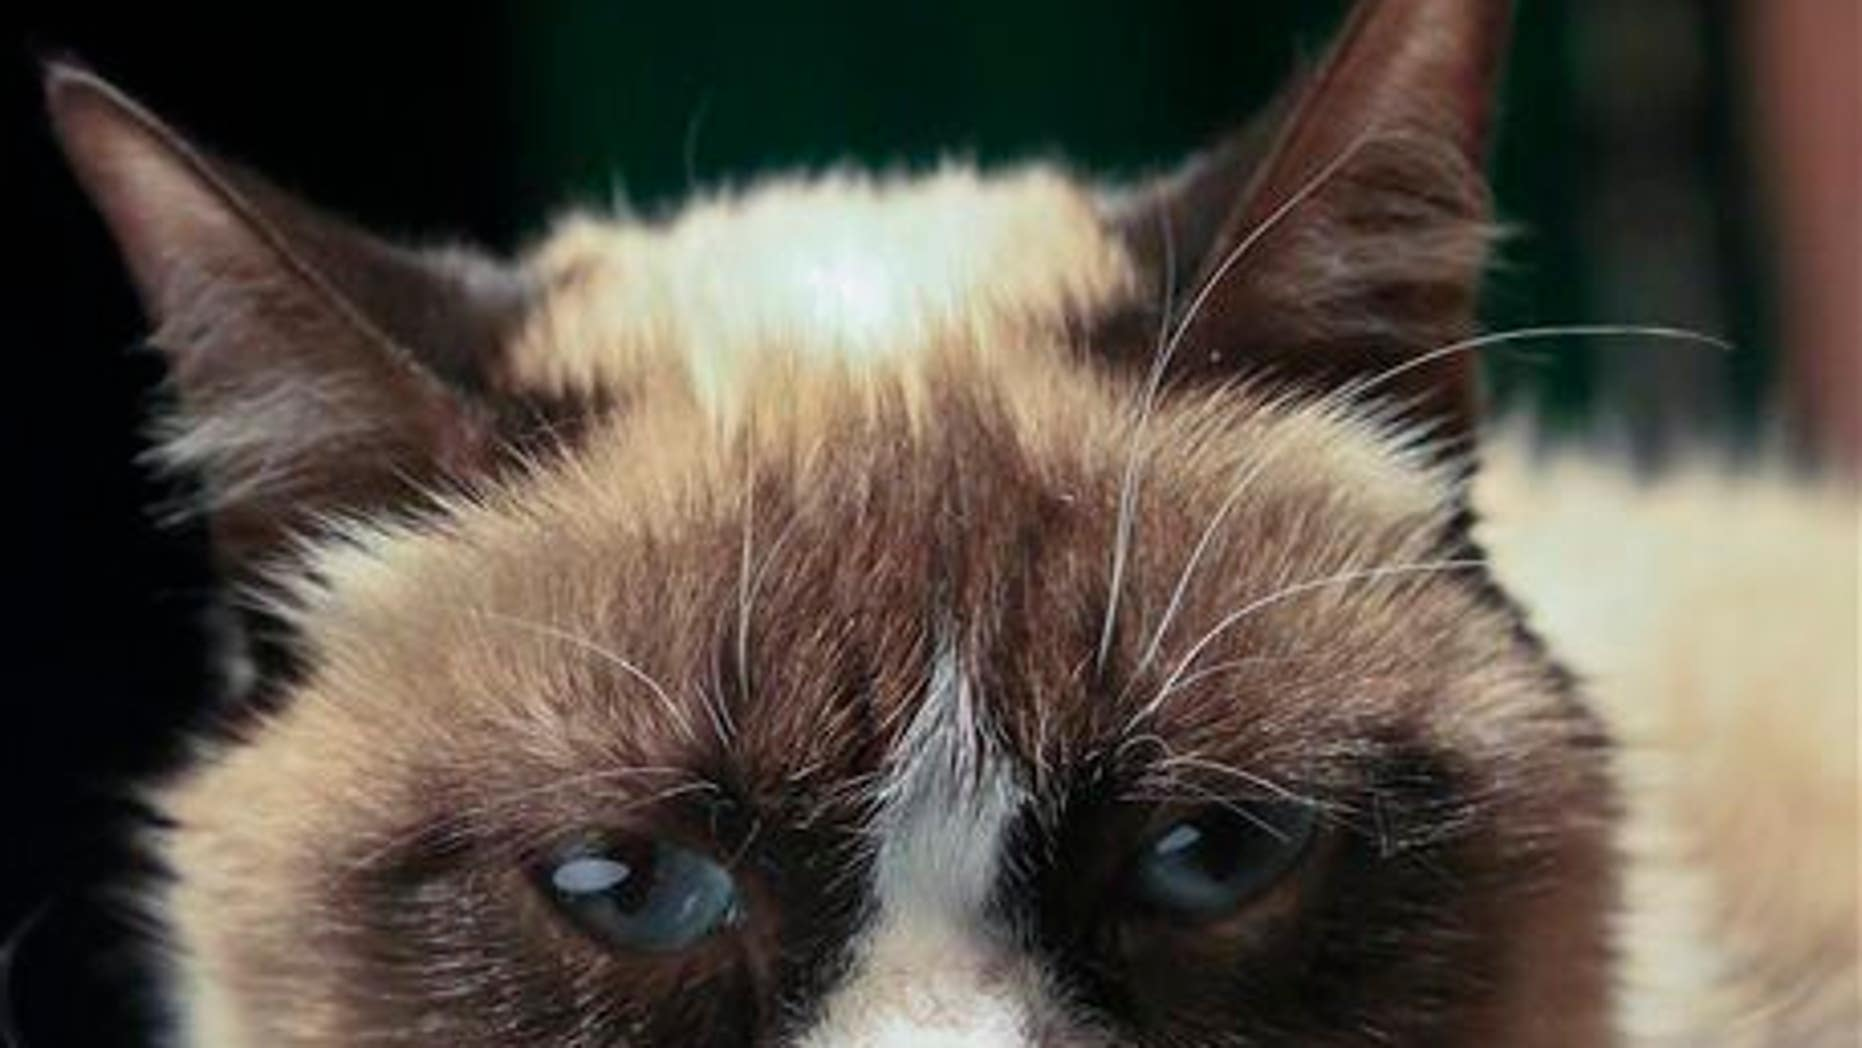 Grumpy Cat, an Internet celebrity cat whose real name is Tardar Sauce, is photographed on Friday, April 4, 2014 in New York.